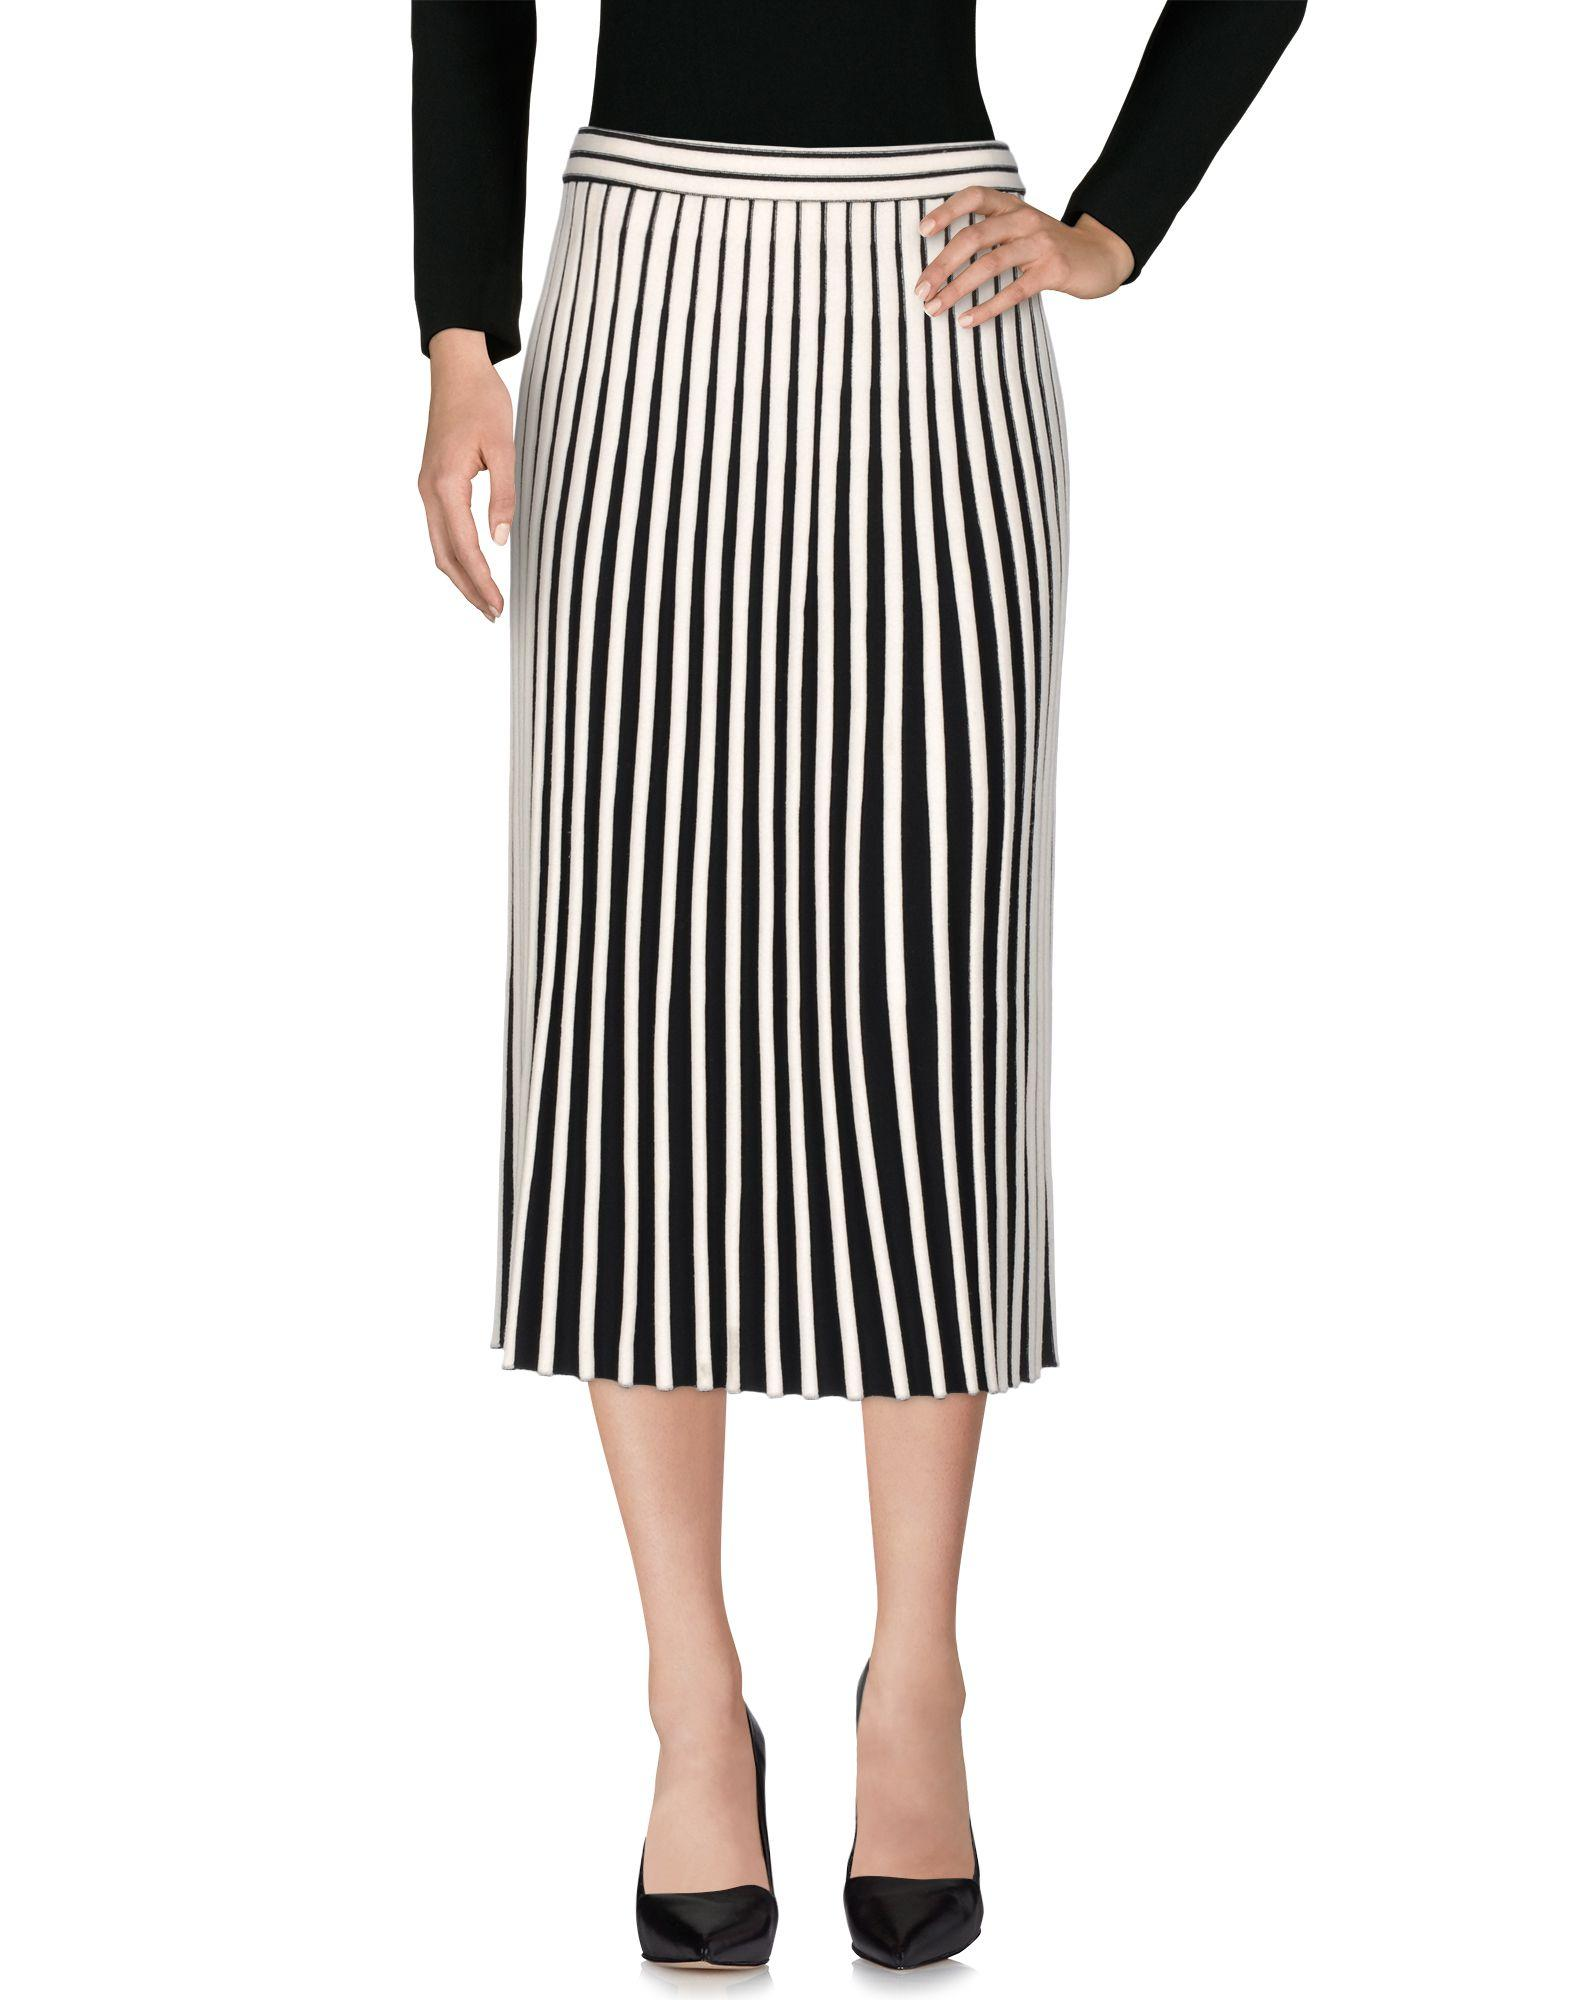 Lyst mrz 3 4 length skirt in white for 20 34 35 dress shirts